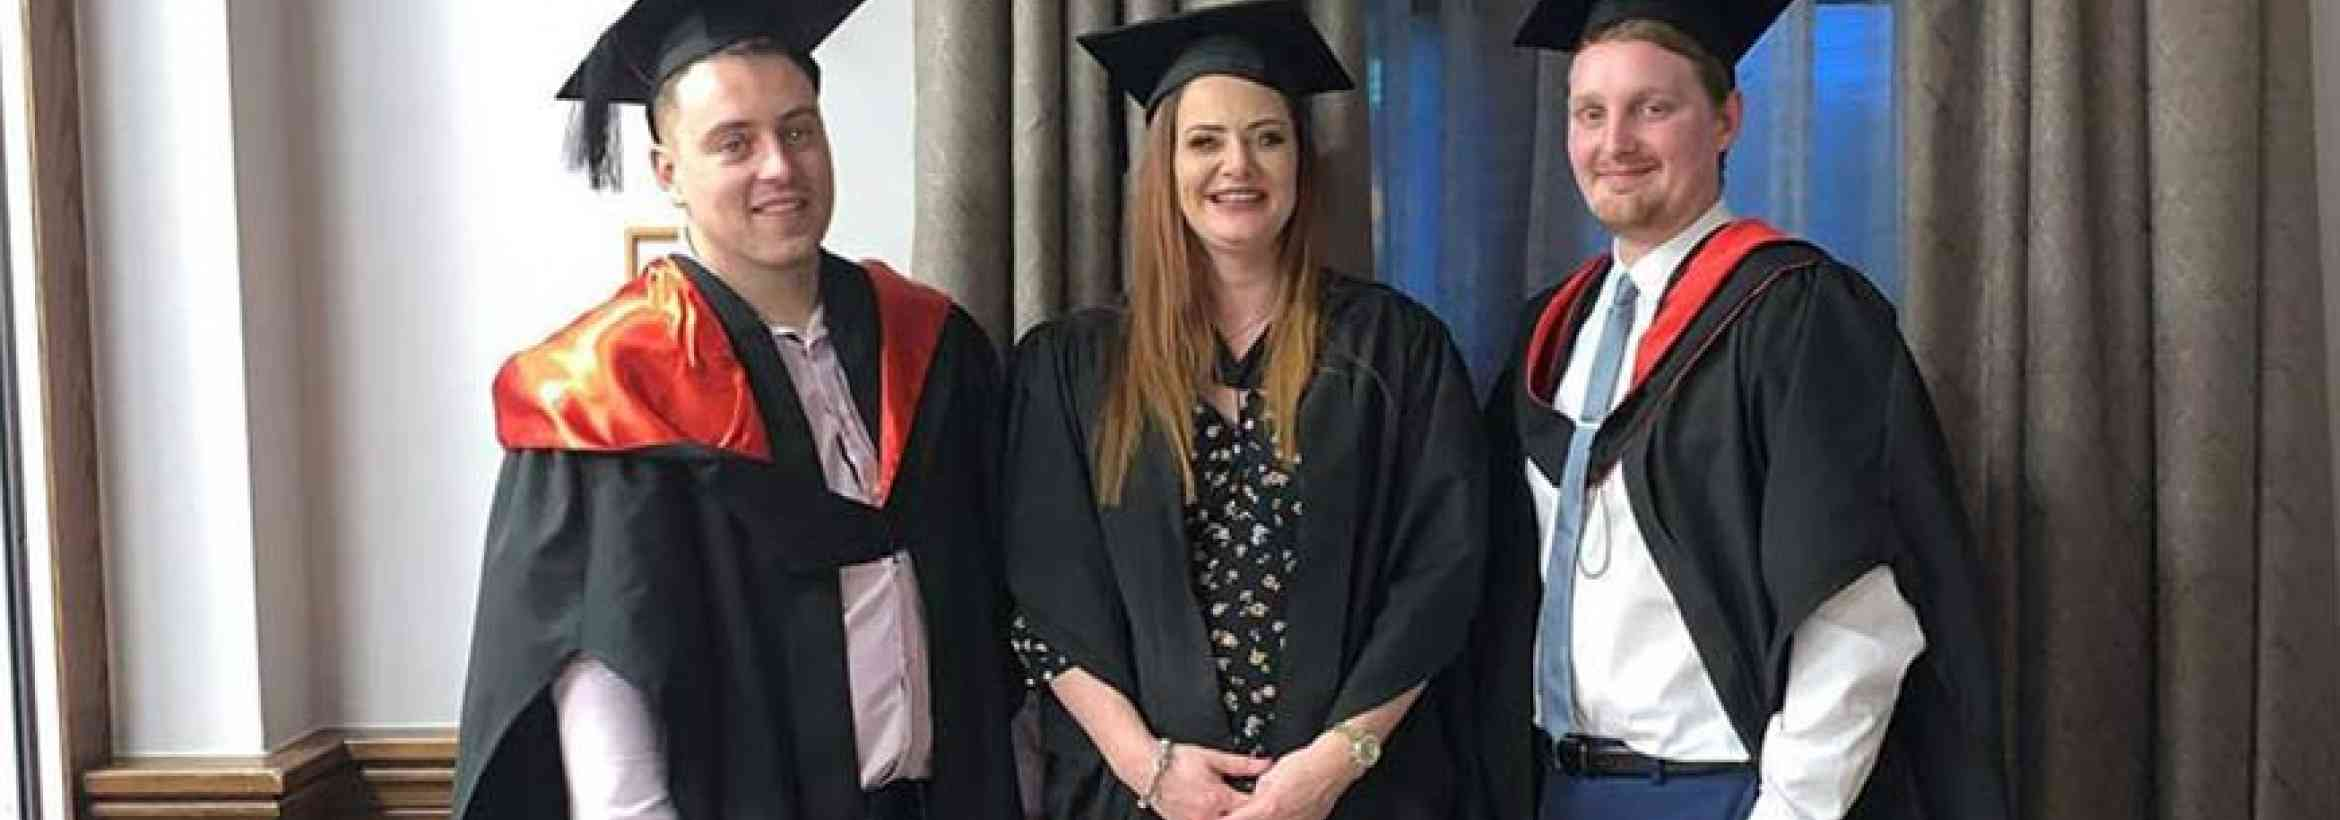 The 3 Amigos: Meet the Latest W. G. Davies Management Graduates